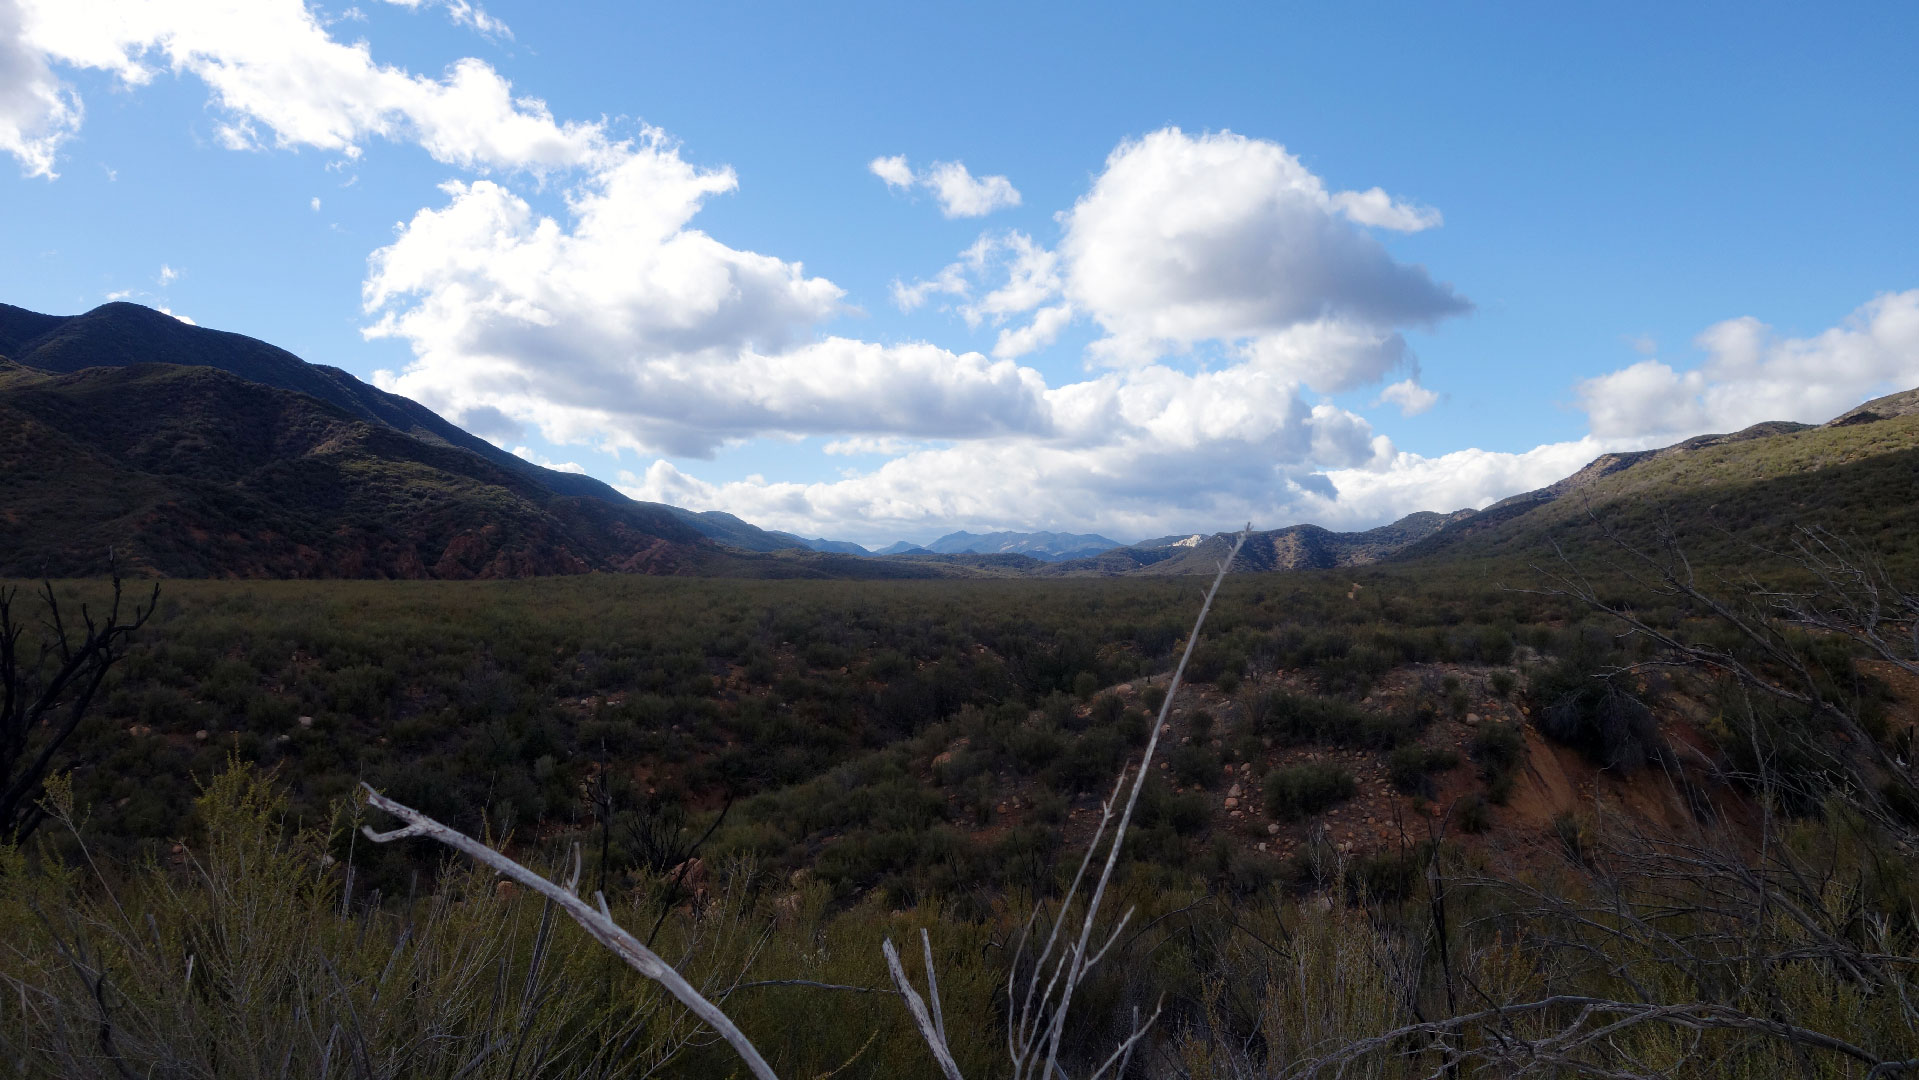 Sespe River Trail - Hiking and Camping in Los Padres National Forest